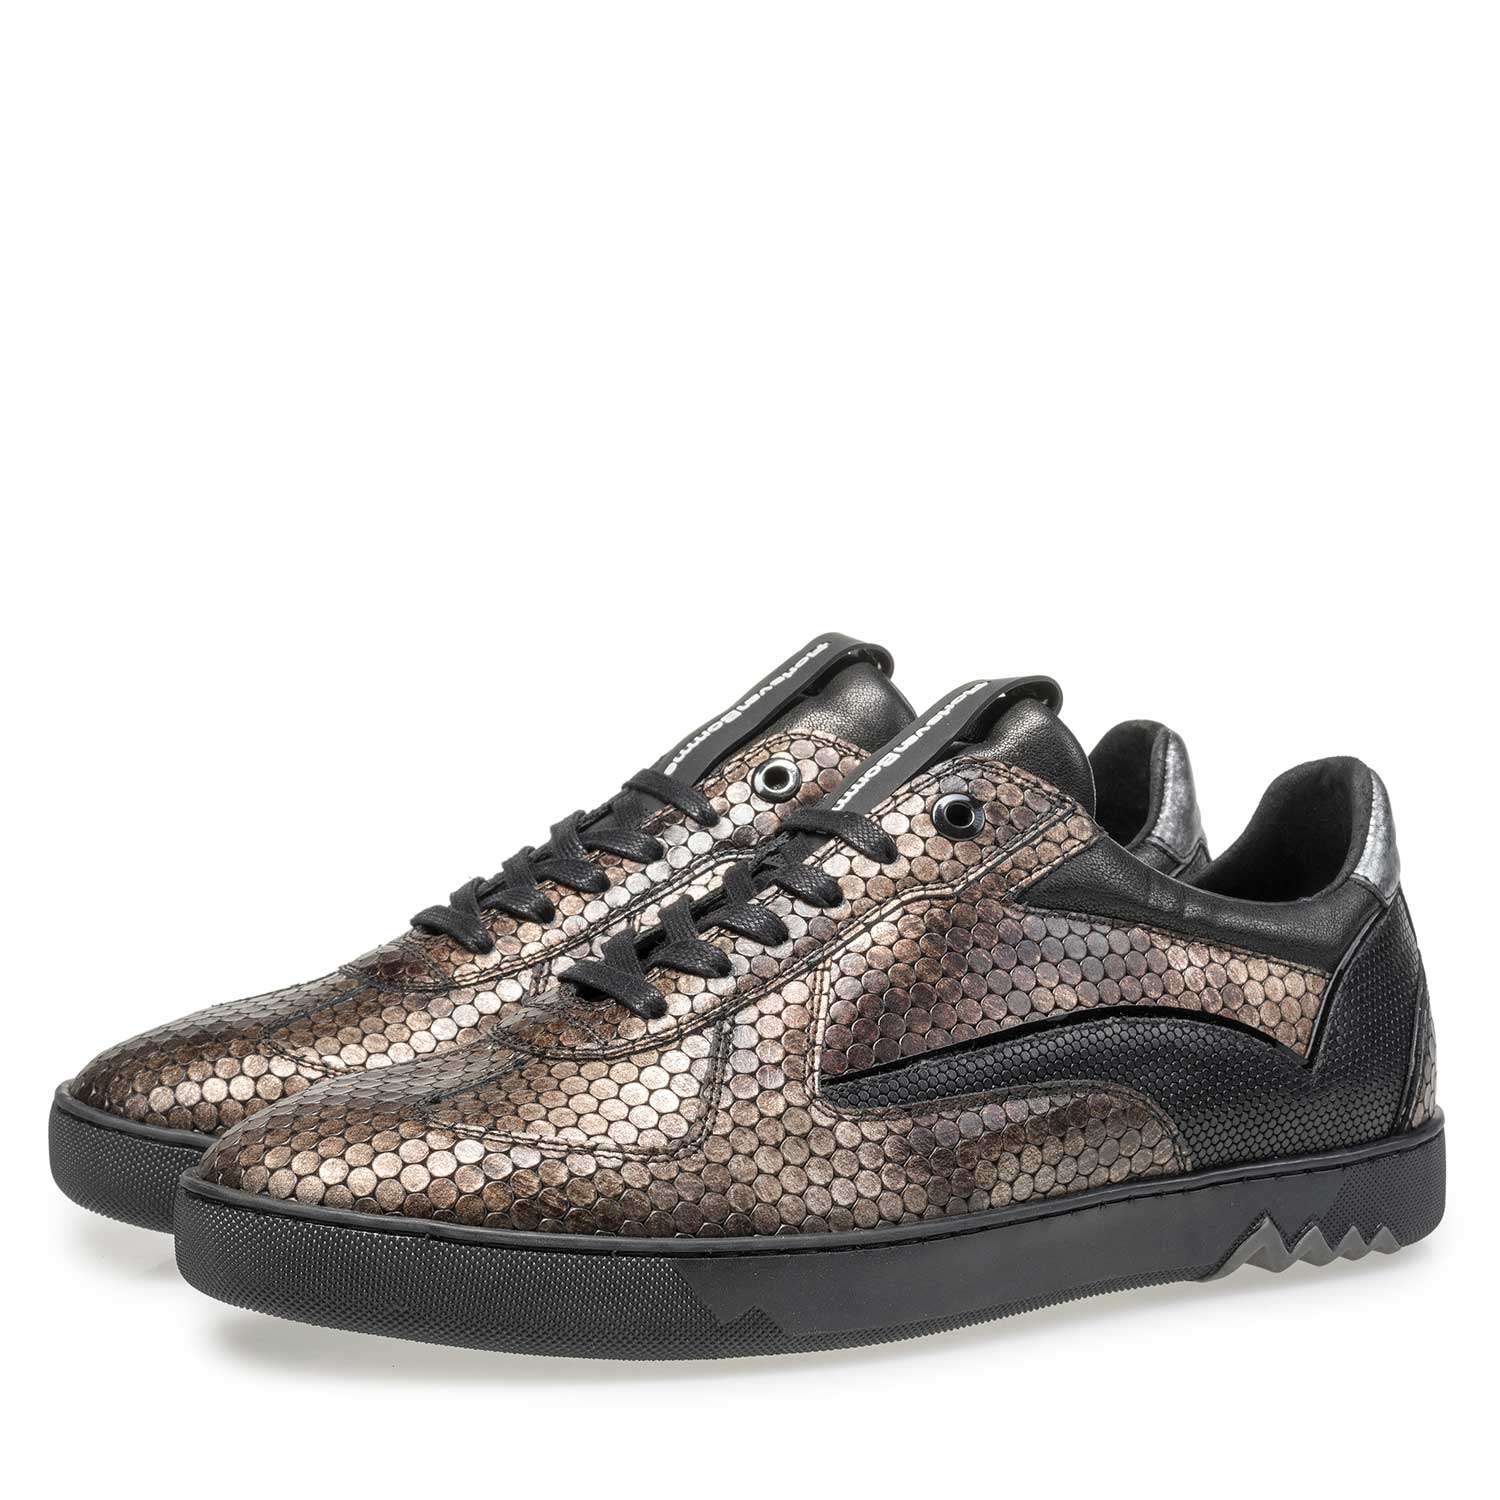 16242/10 - Brown leather sneaker with metallic print